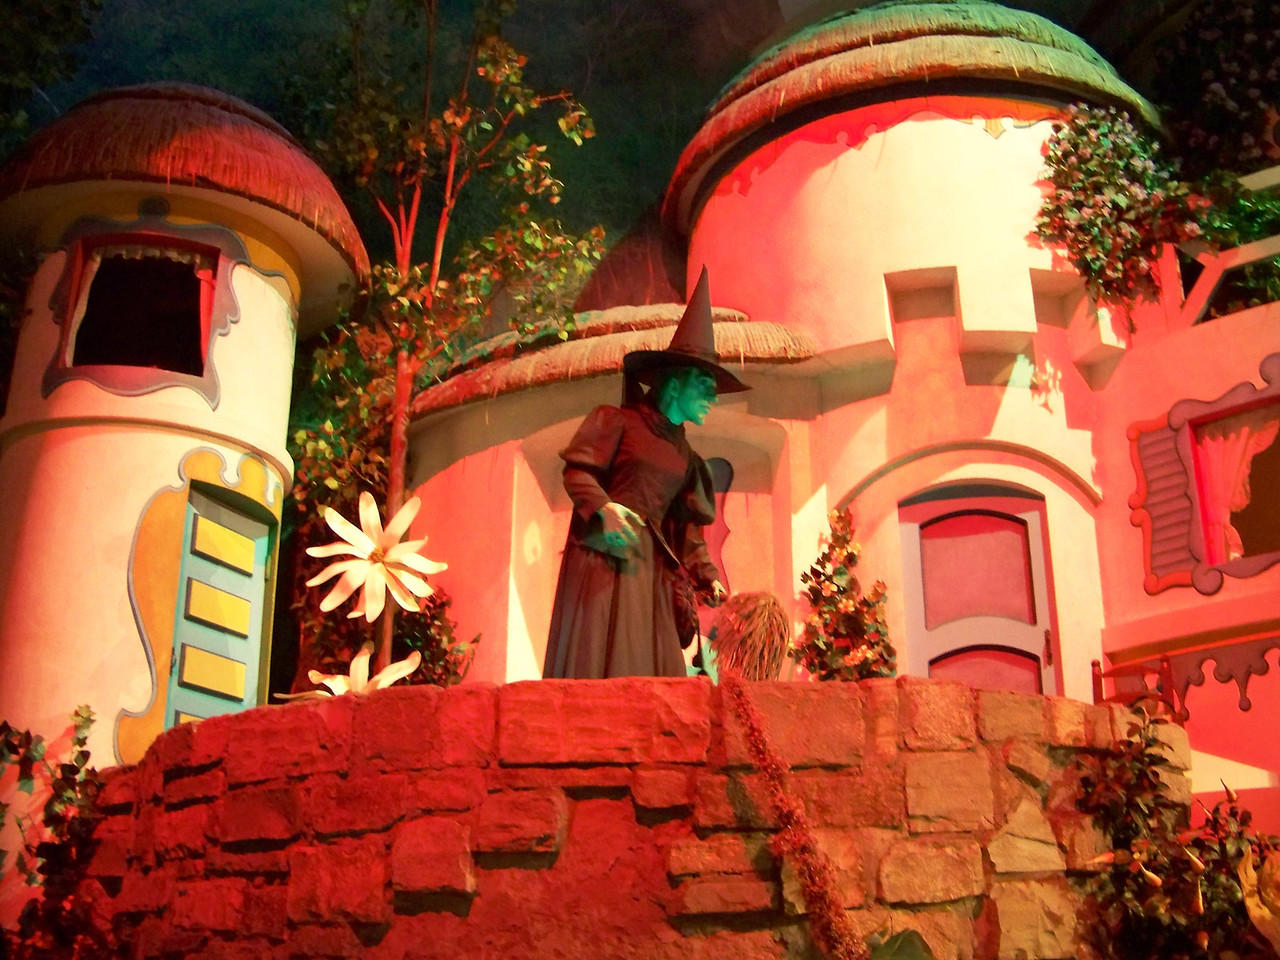 Then there's a puff of orange smoke, and the Wicked Witch of the West suddenly appears in Munchkinland.  Don't be scared!<br /> [Disney's Hollywood Studios - Great Movie Ride - The Wizard of Oz]